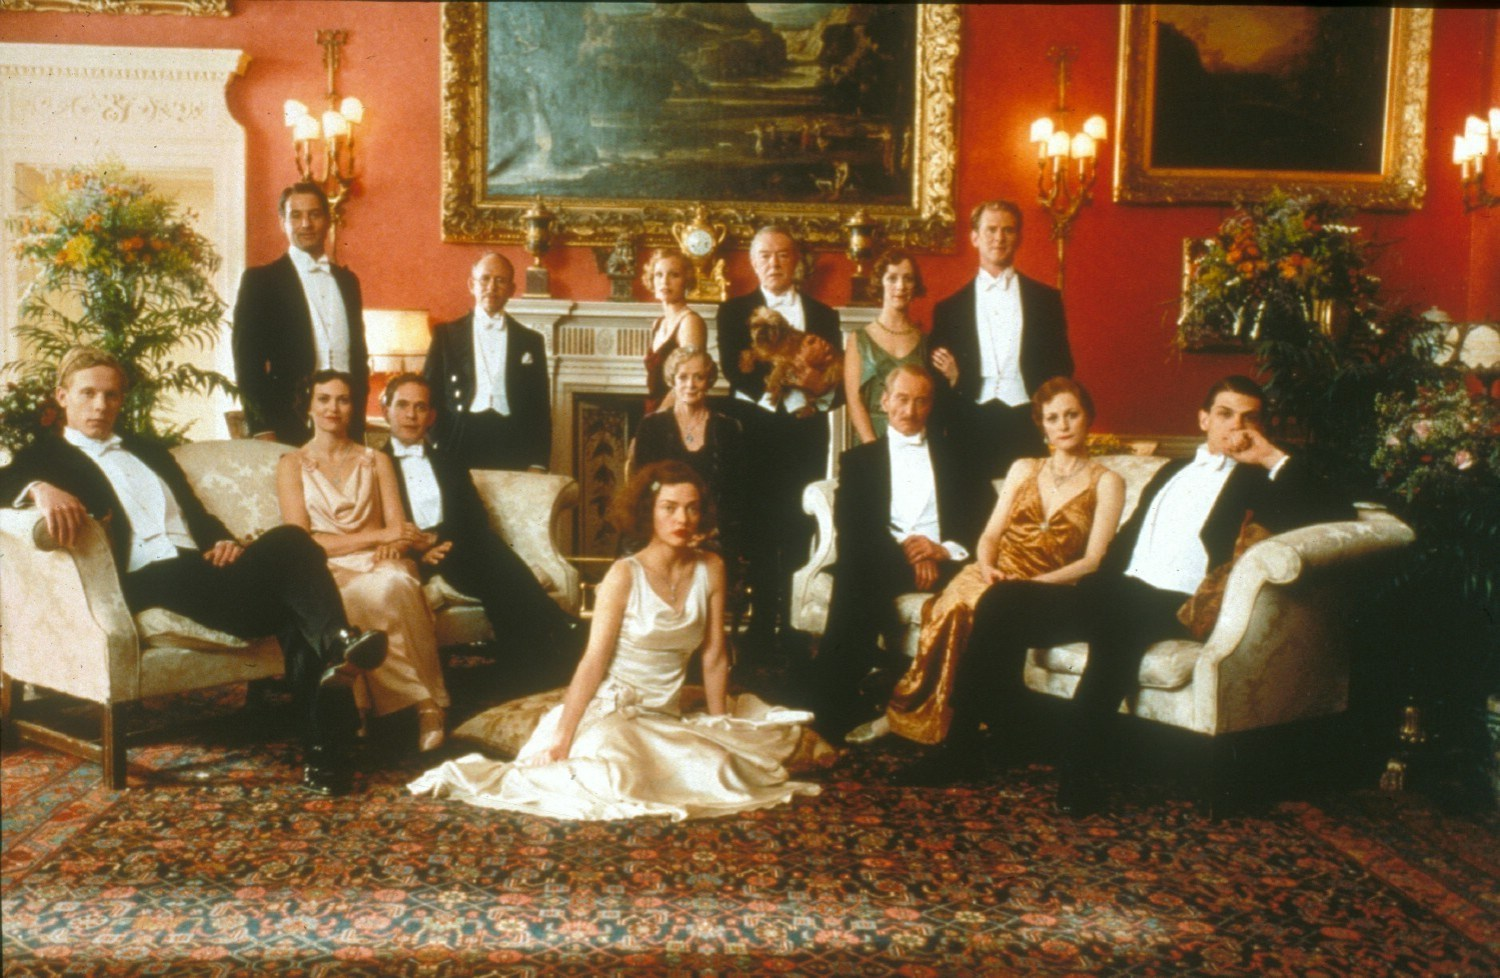 Charles Dance,Clive Owen,Derek Jacobi,Helen Mirren,Jeremy Northam,Kelly Macdonald,Kristin Scott Thomas,Laurence Fox,Maggie Smith,Michael Gambon,Ryan Phillippe,Stephen Fry,Tom Hollander